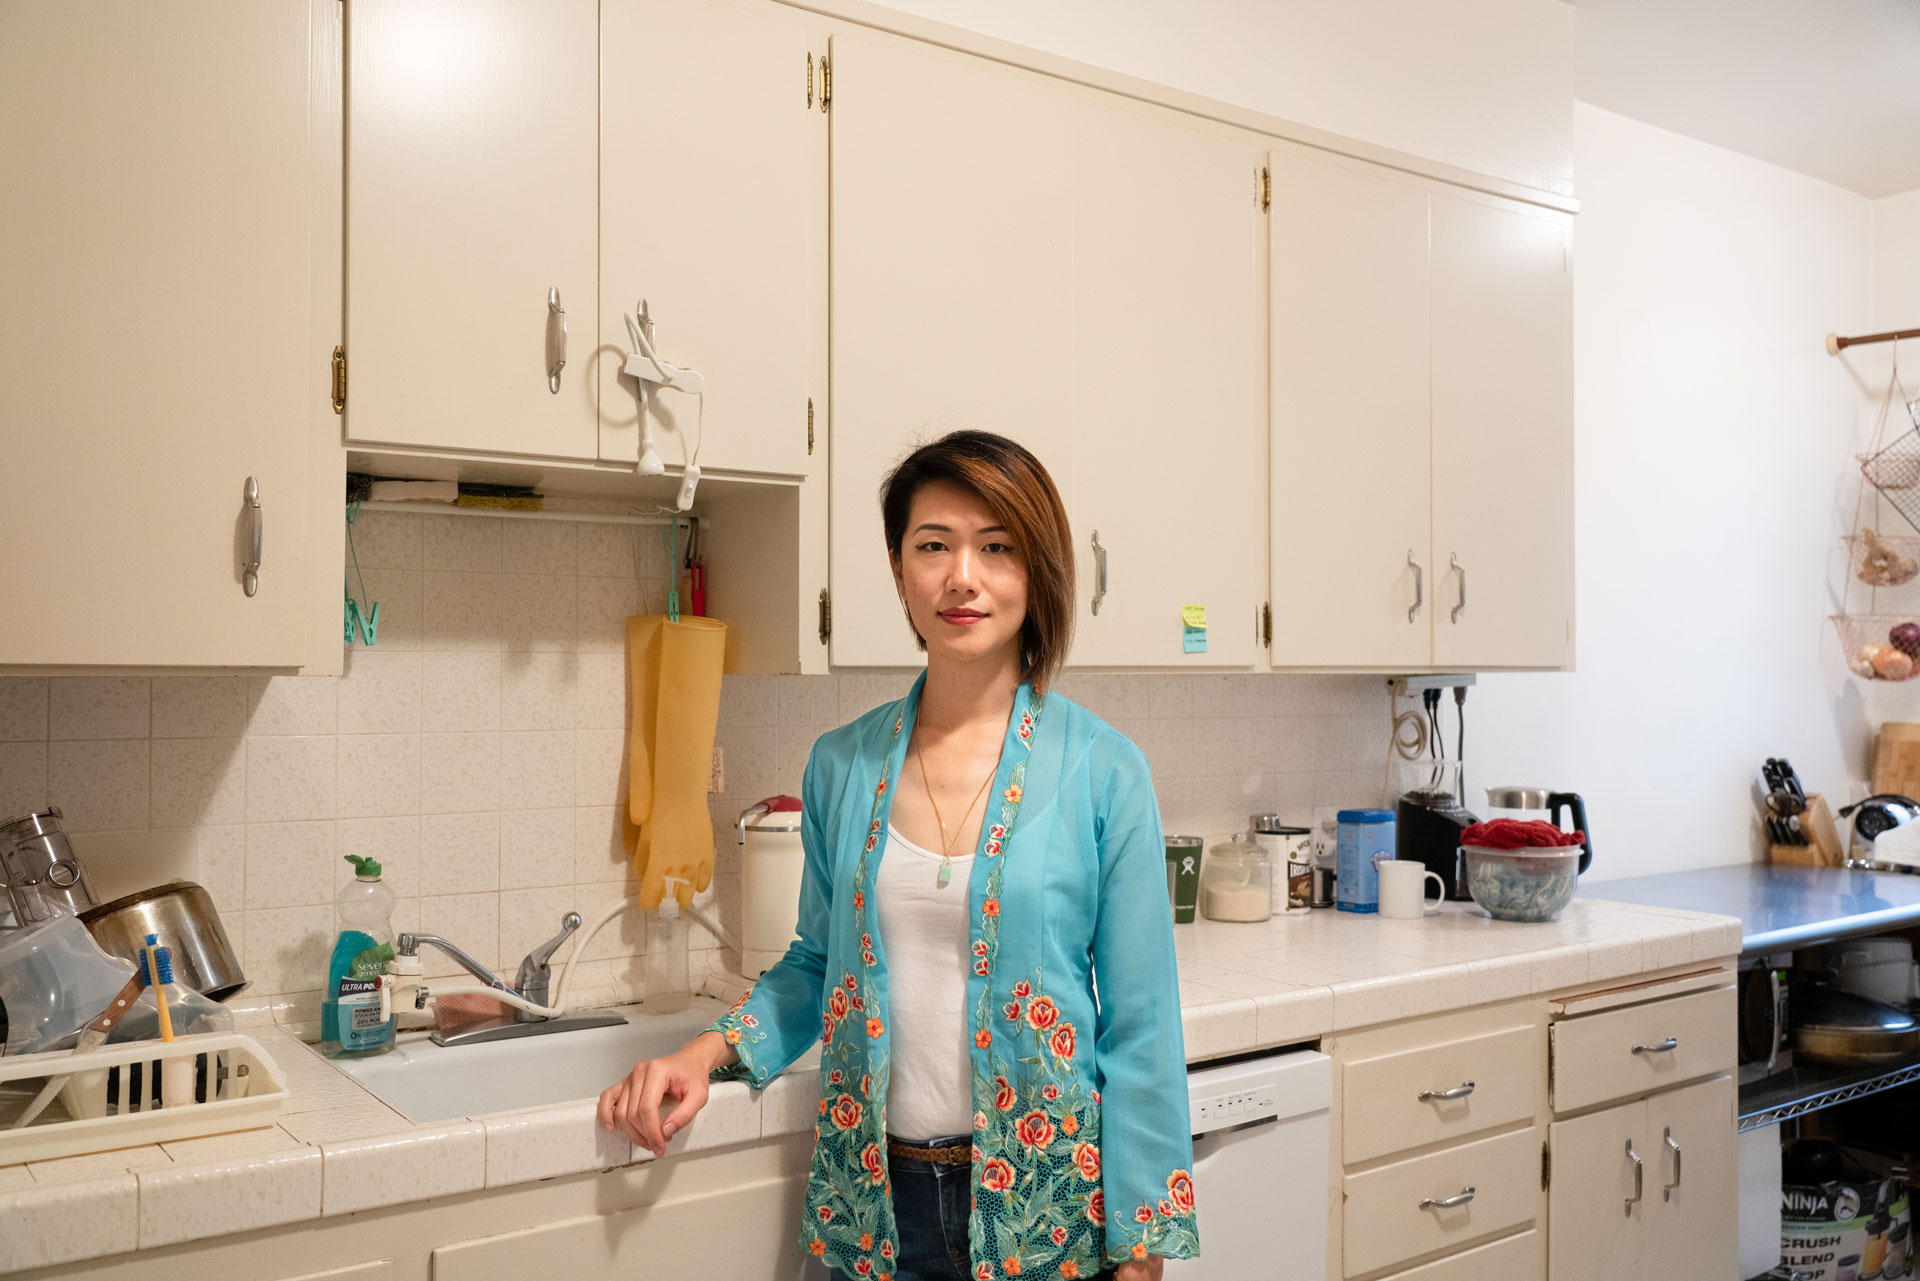 Woman in turquoise shirt leans one arm on the edge of sink, stands in her kitchen in front of cabinets and a long tiled counter.